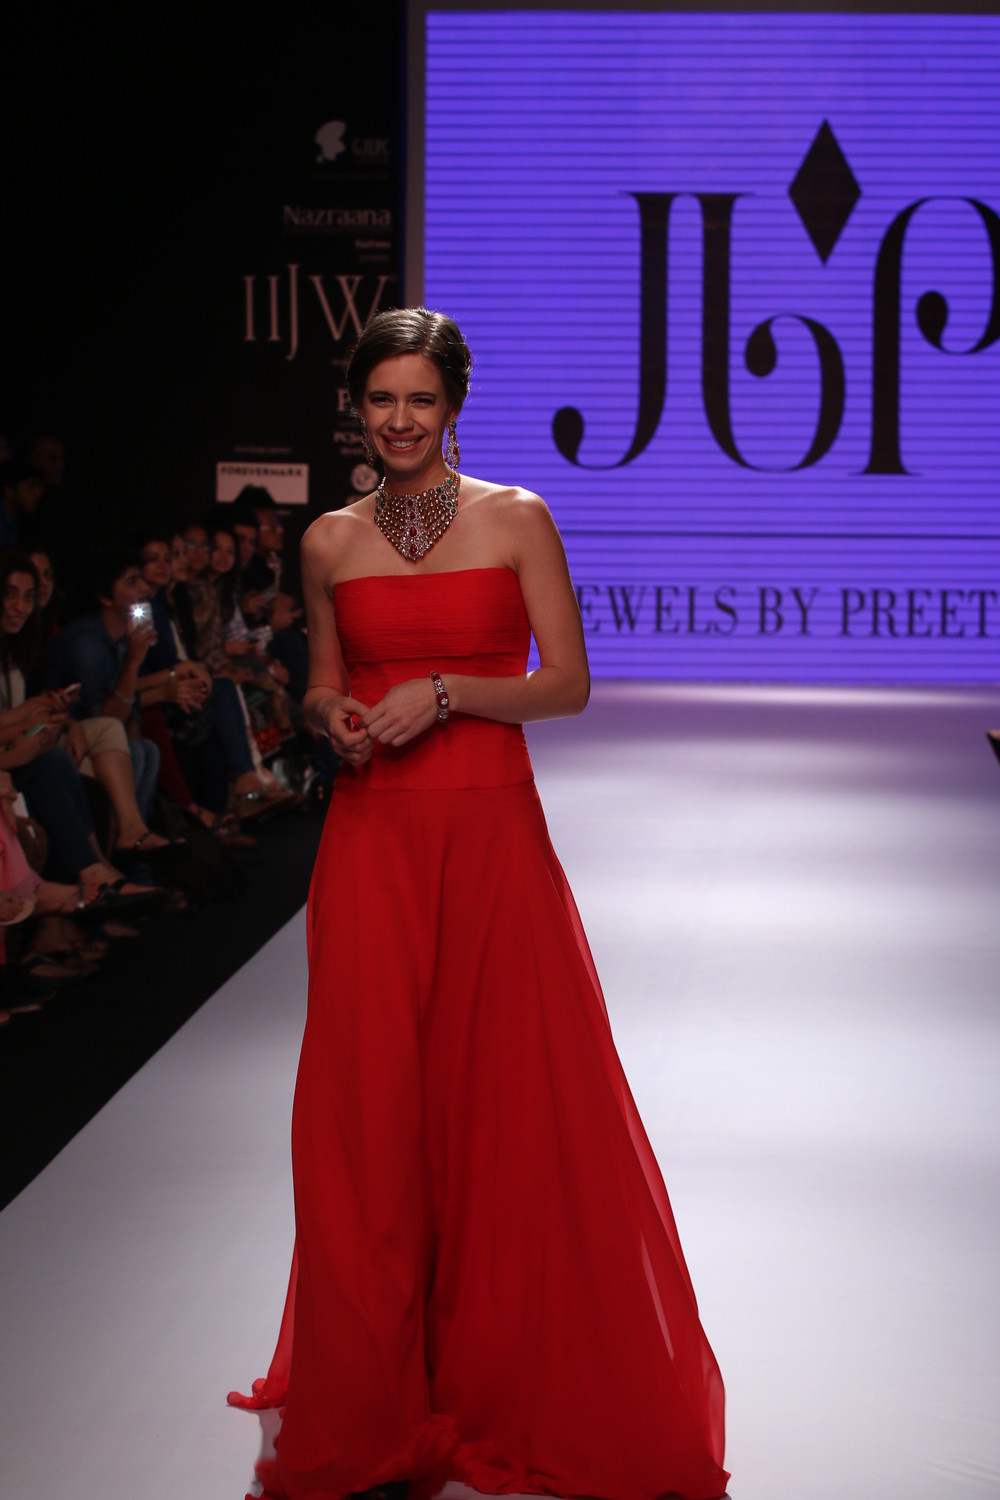 Seen at India International jewellery week - Kalki Koechlin walking for Jewels by Preeti.JPG